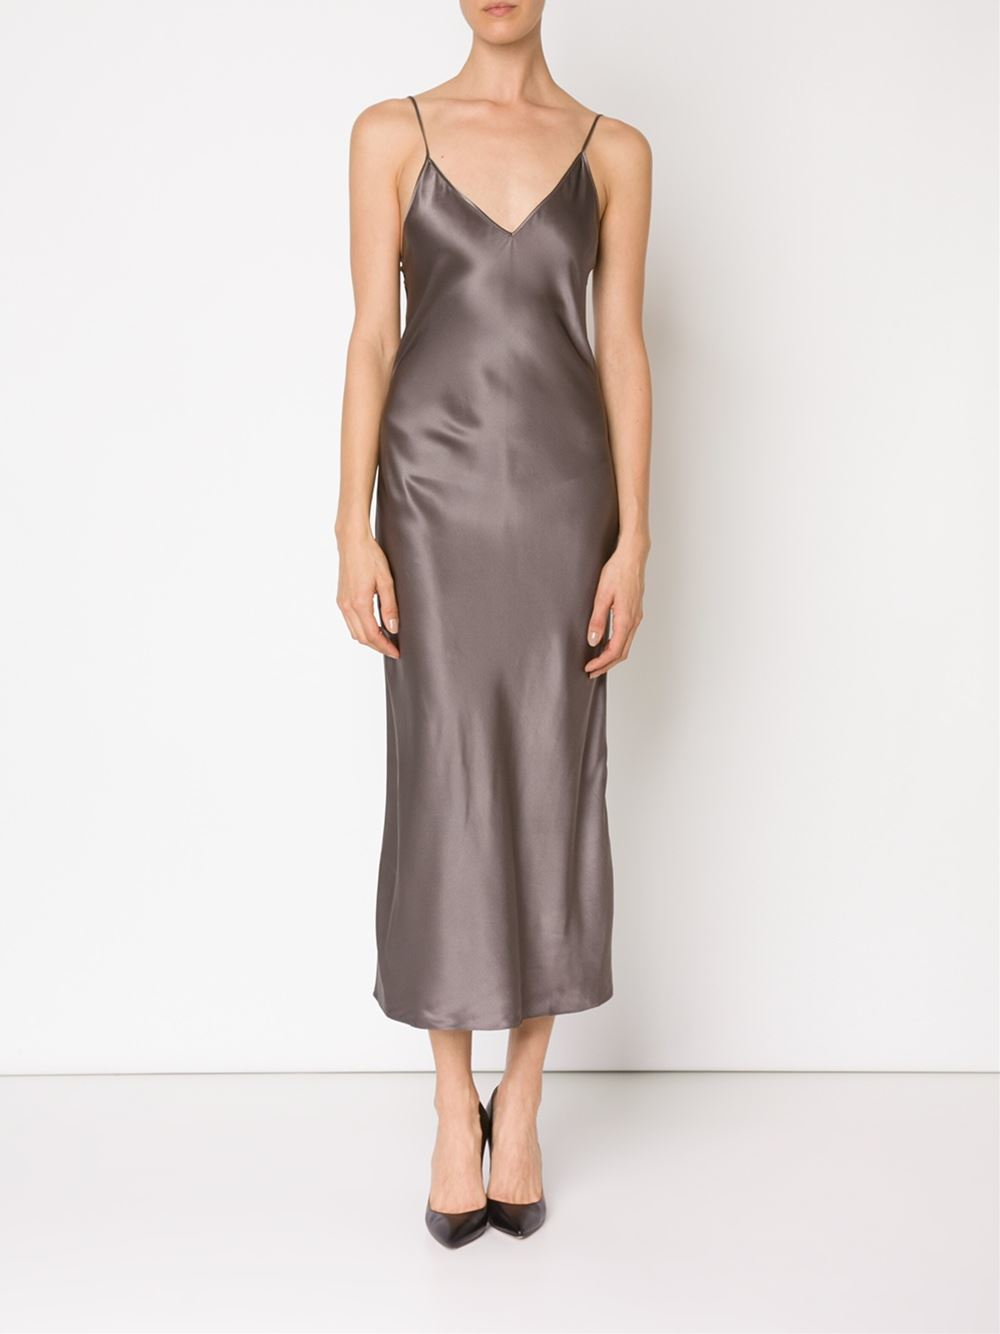 ed45a63c8ac5 Protagonist Long Slip Dress in Gray - Lyst